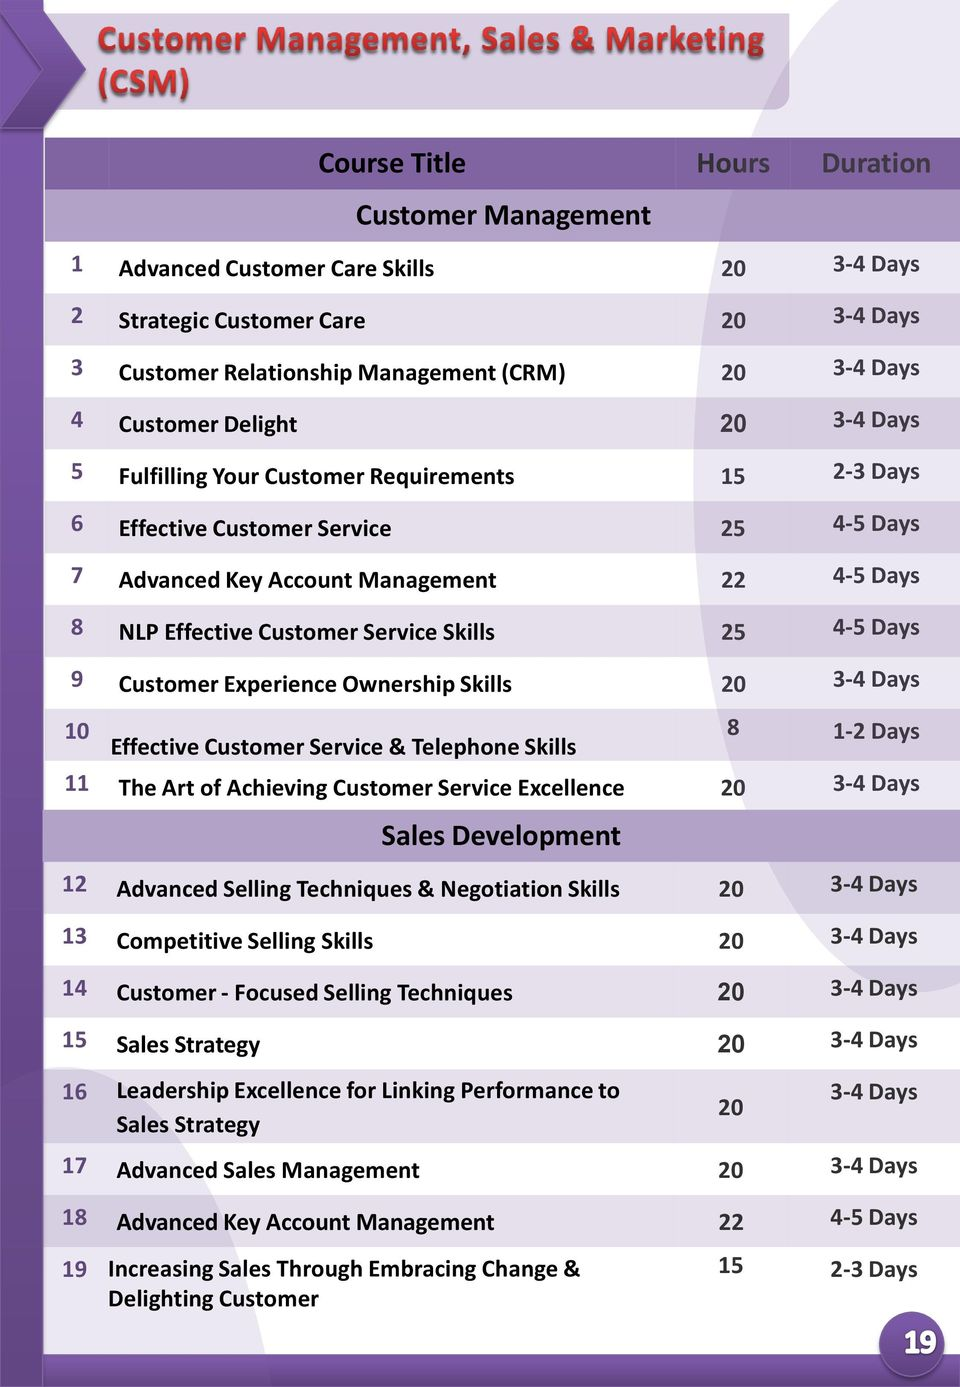 Skills 10 Effective Customer Service & Telephone Skills 8 1-2 Days 11 The Art of Achieving Customer Service Excellence Sales Development 12 Advanced Selling Techniques & Negotiation Skills 13